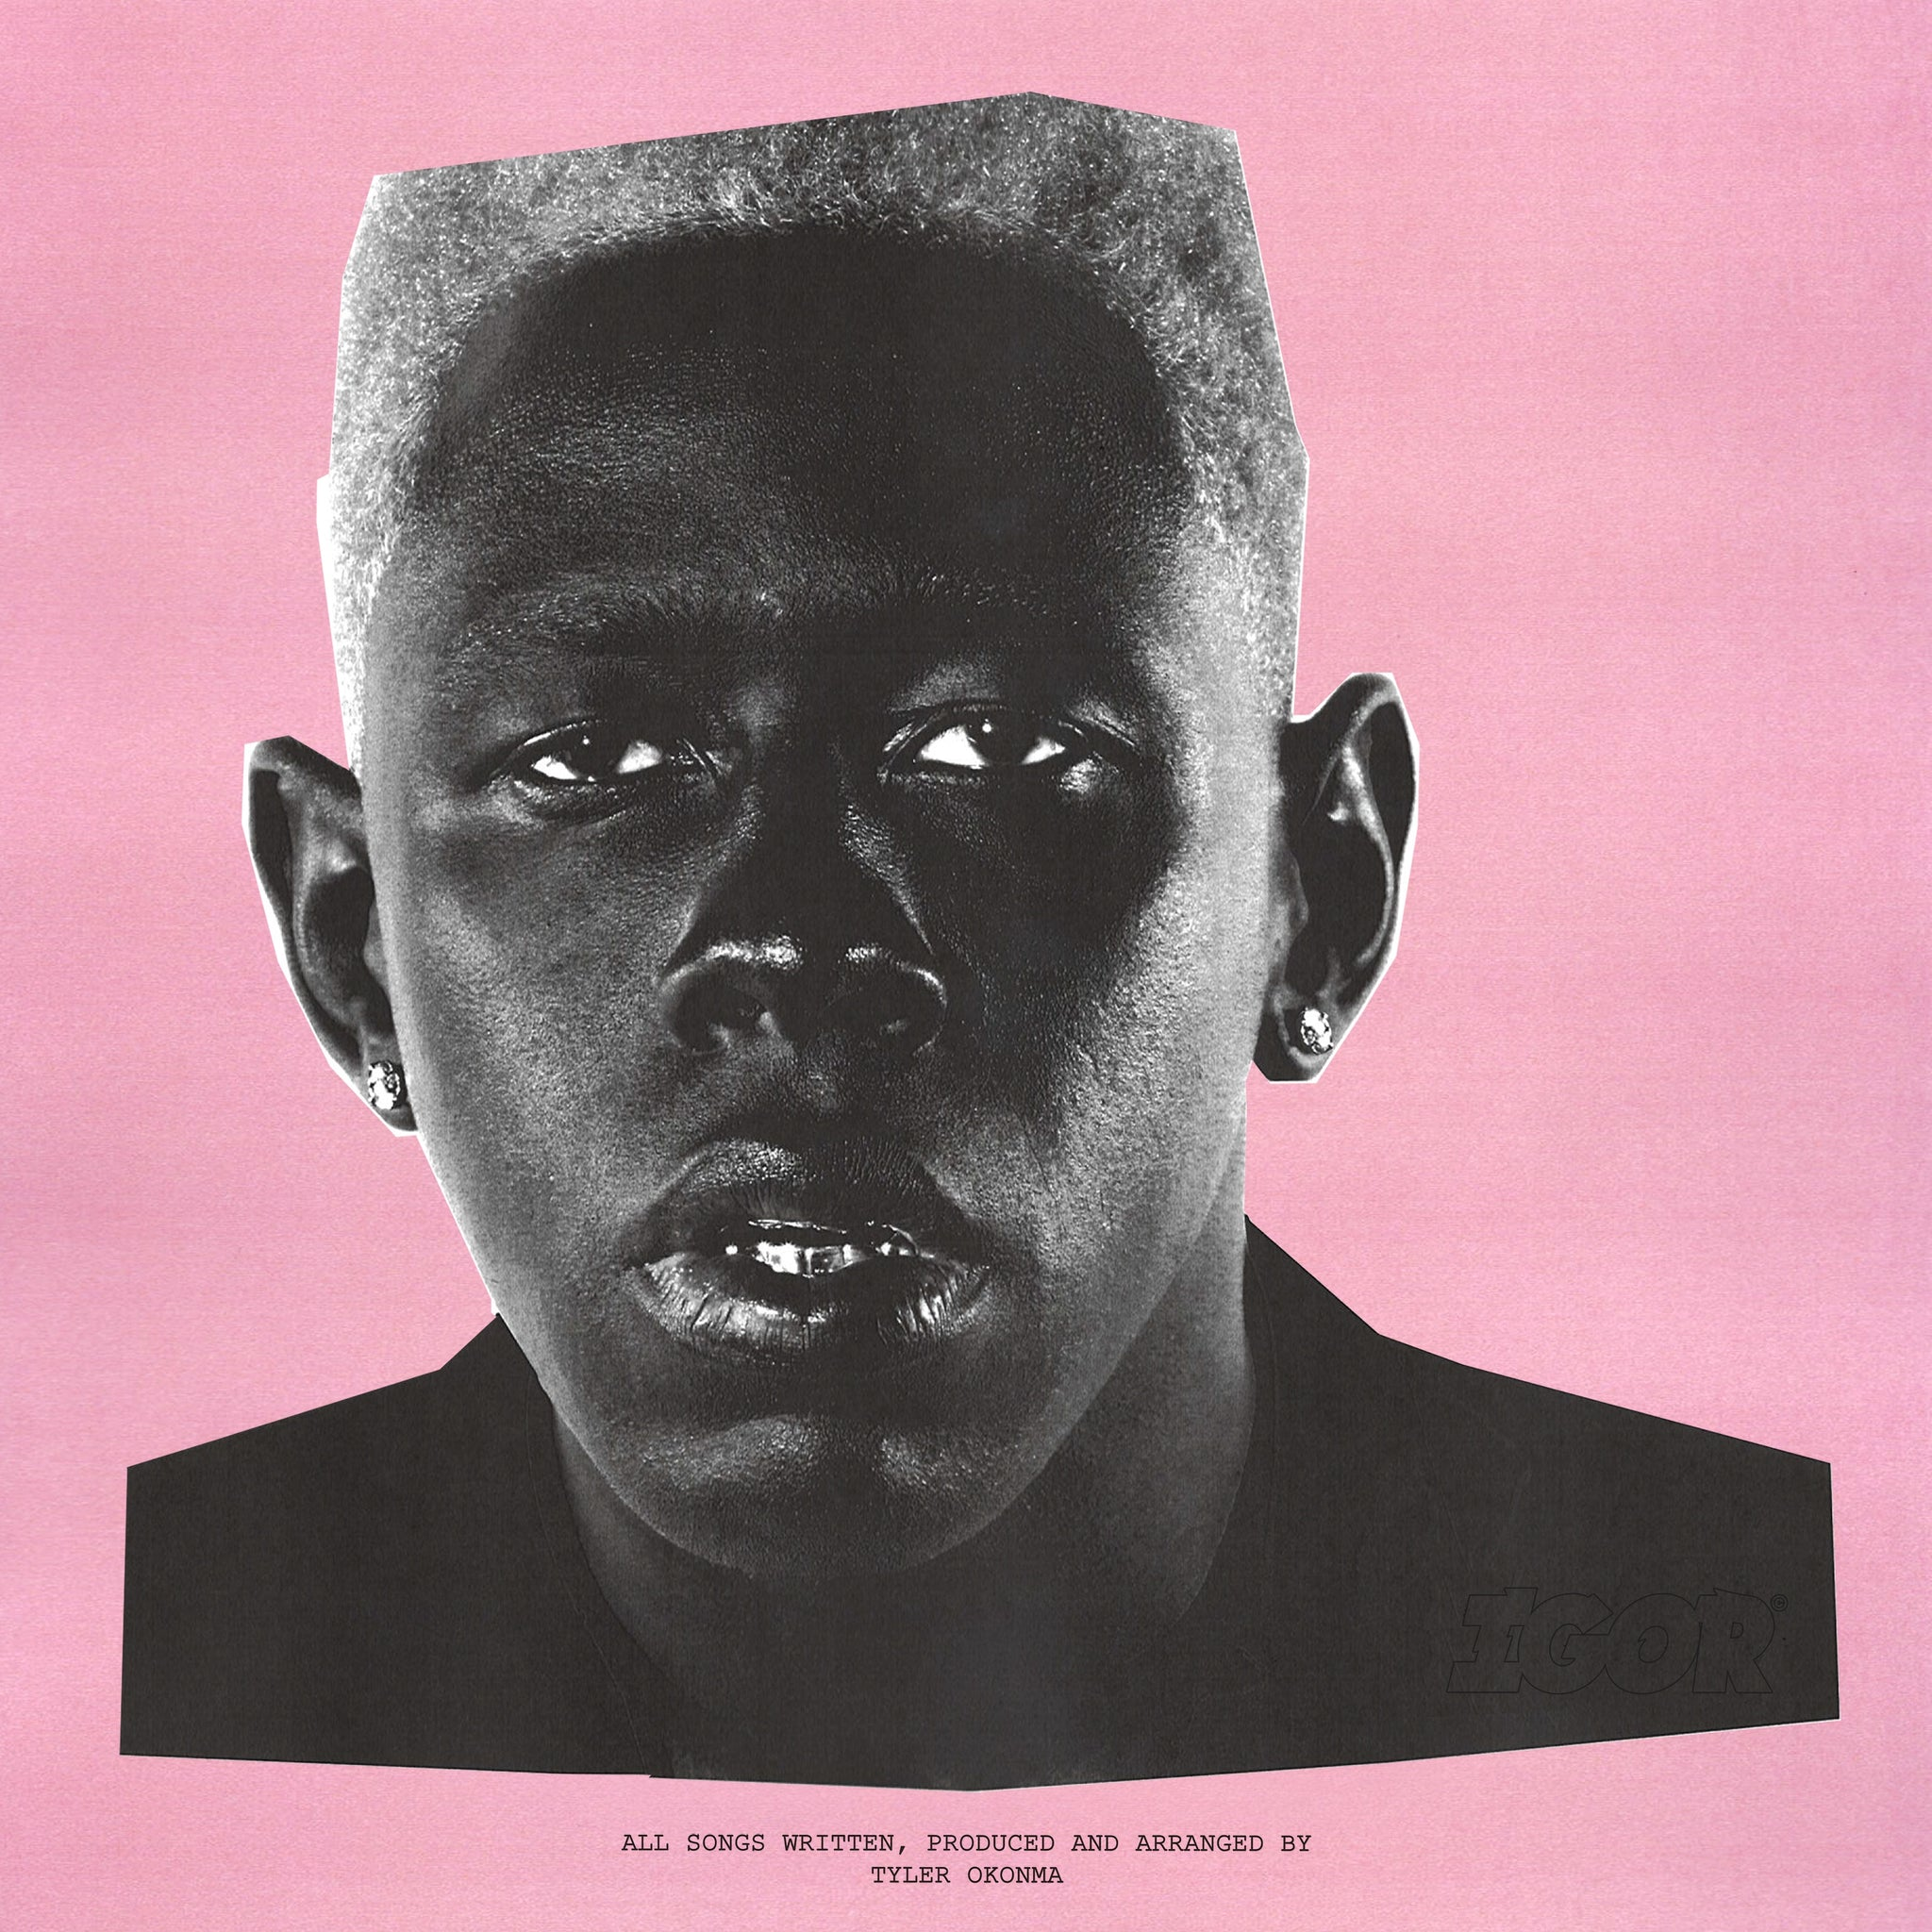 Tyler, The Creator - IGOR - New Lp Record 2019 CBS USA Vinyl - Hip Hop / R&B